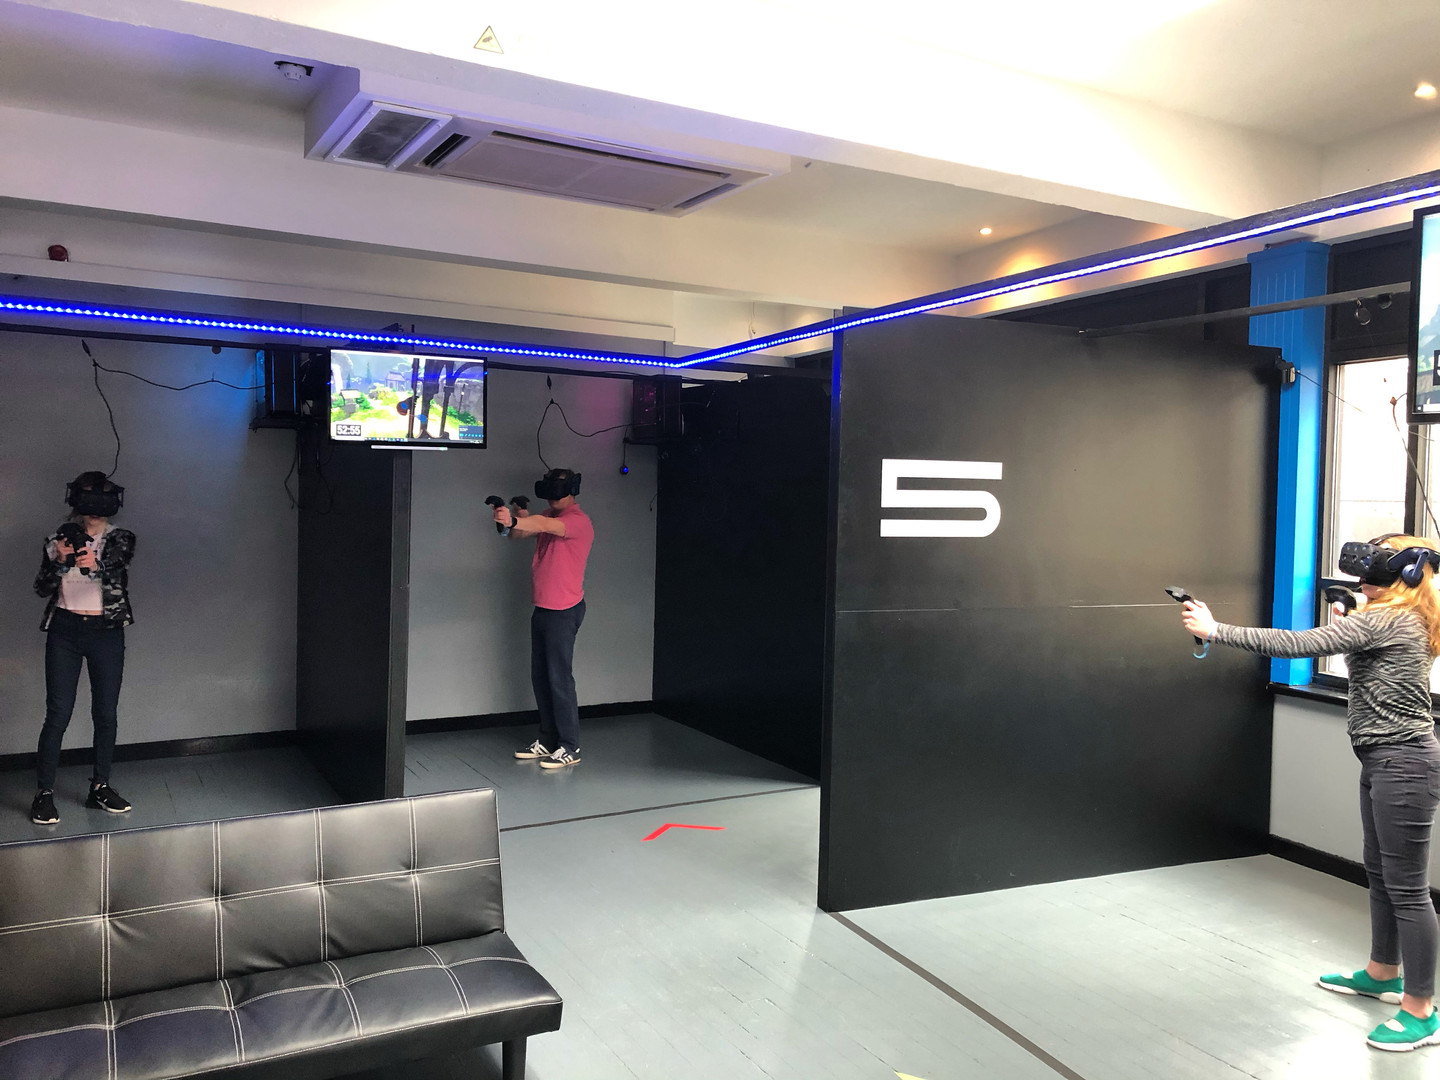 Play together as a family in a VR arena experience